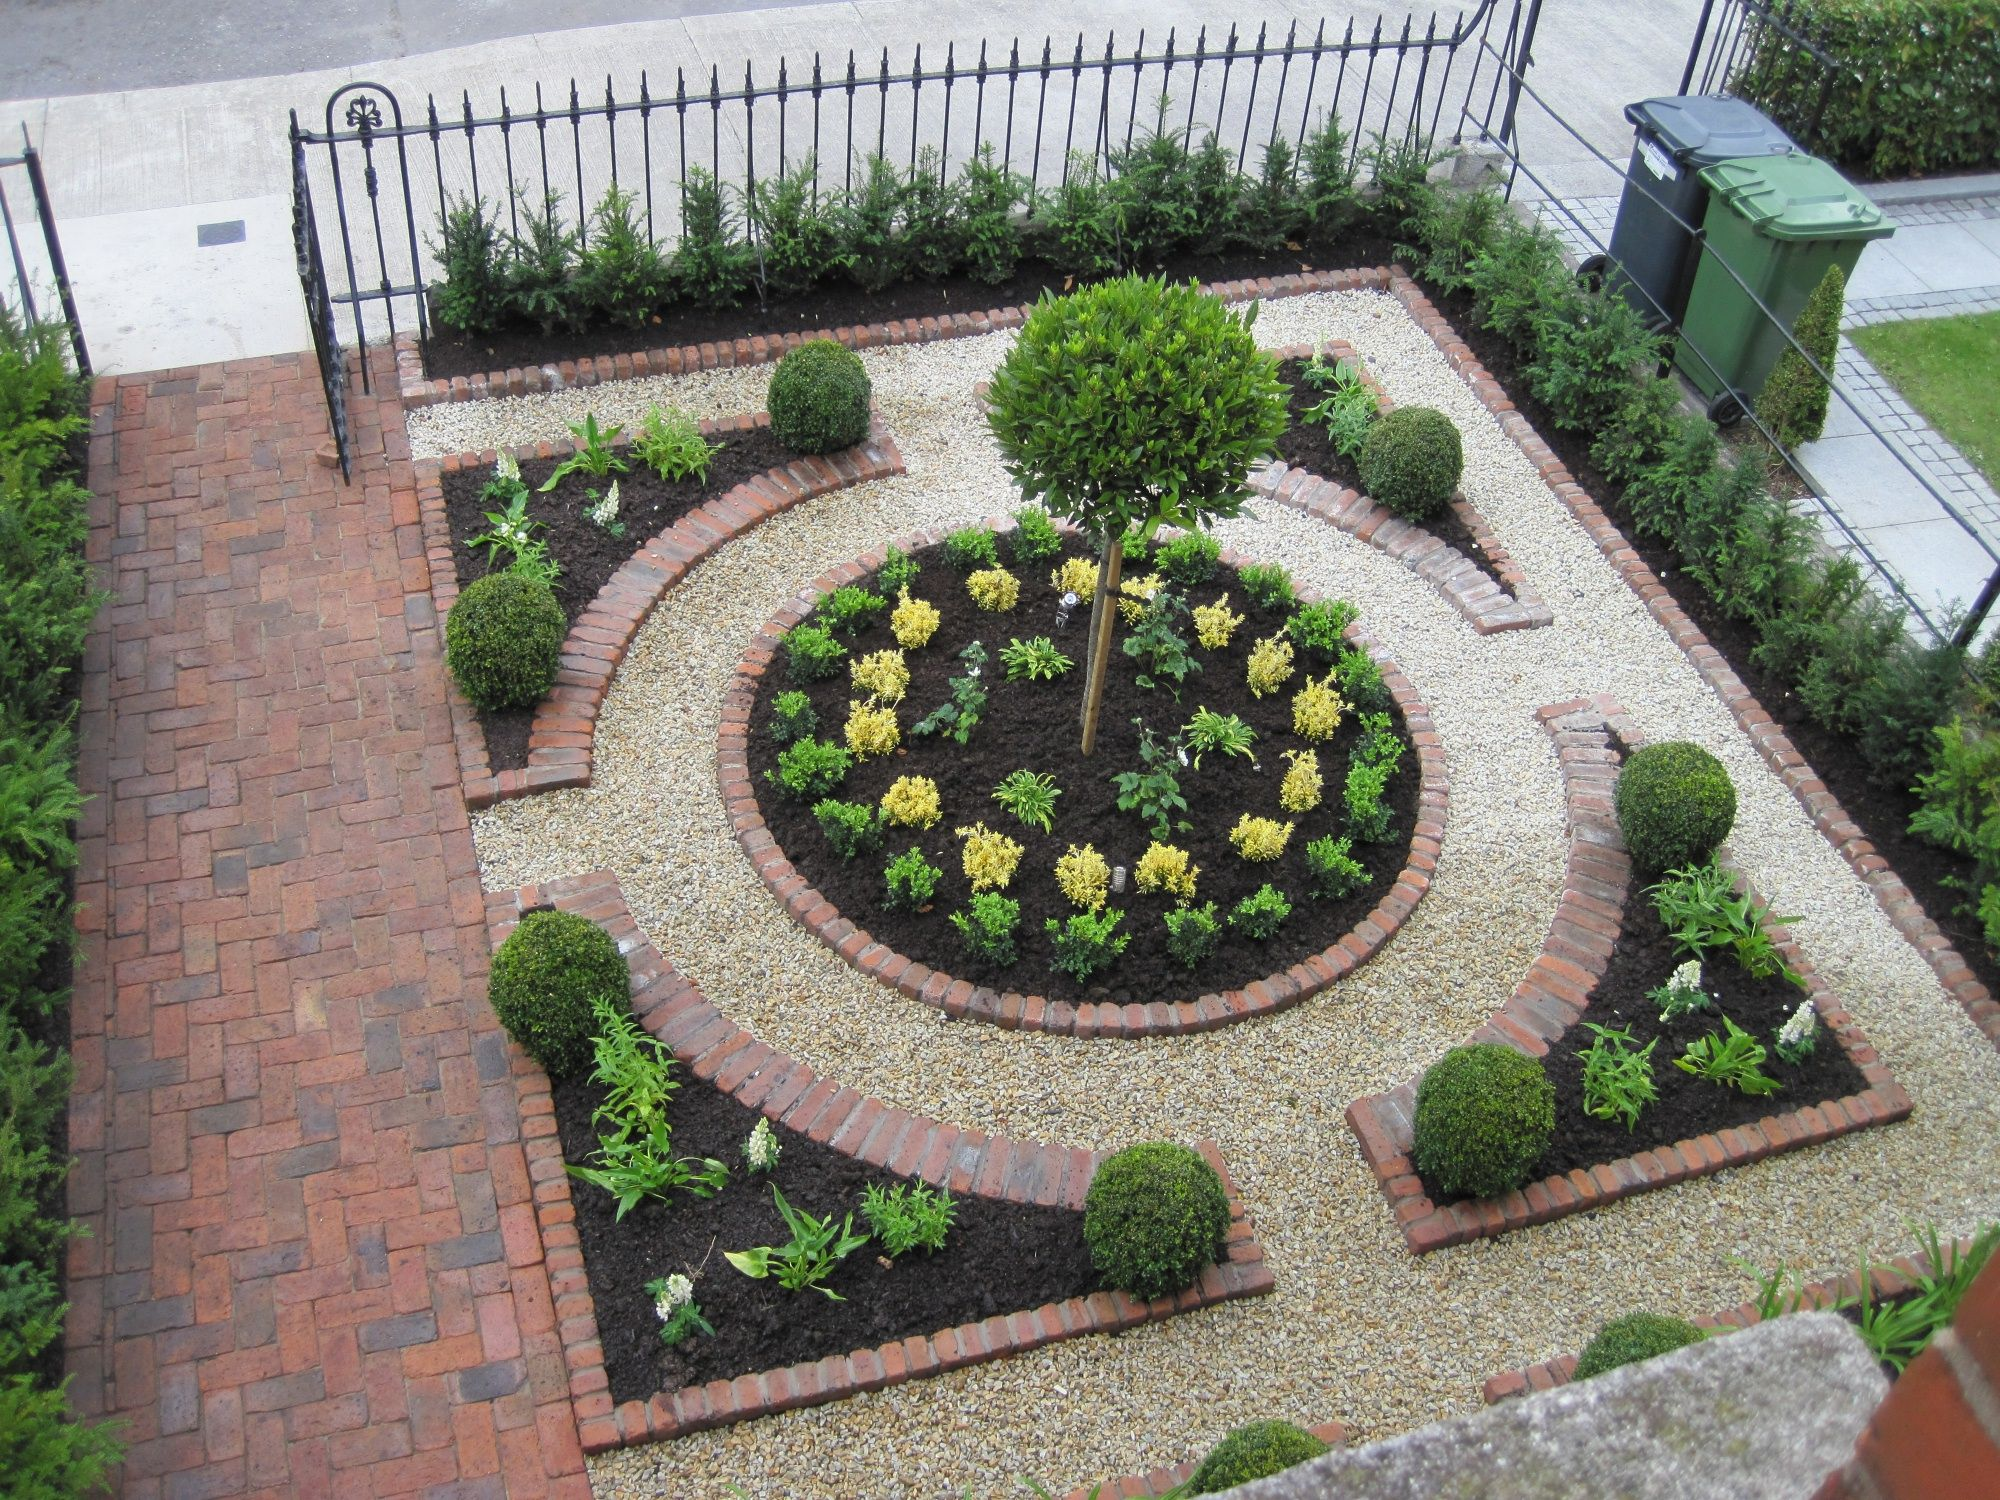 Form al parterred for a front garden landscaping decks for Front garden design ideas